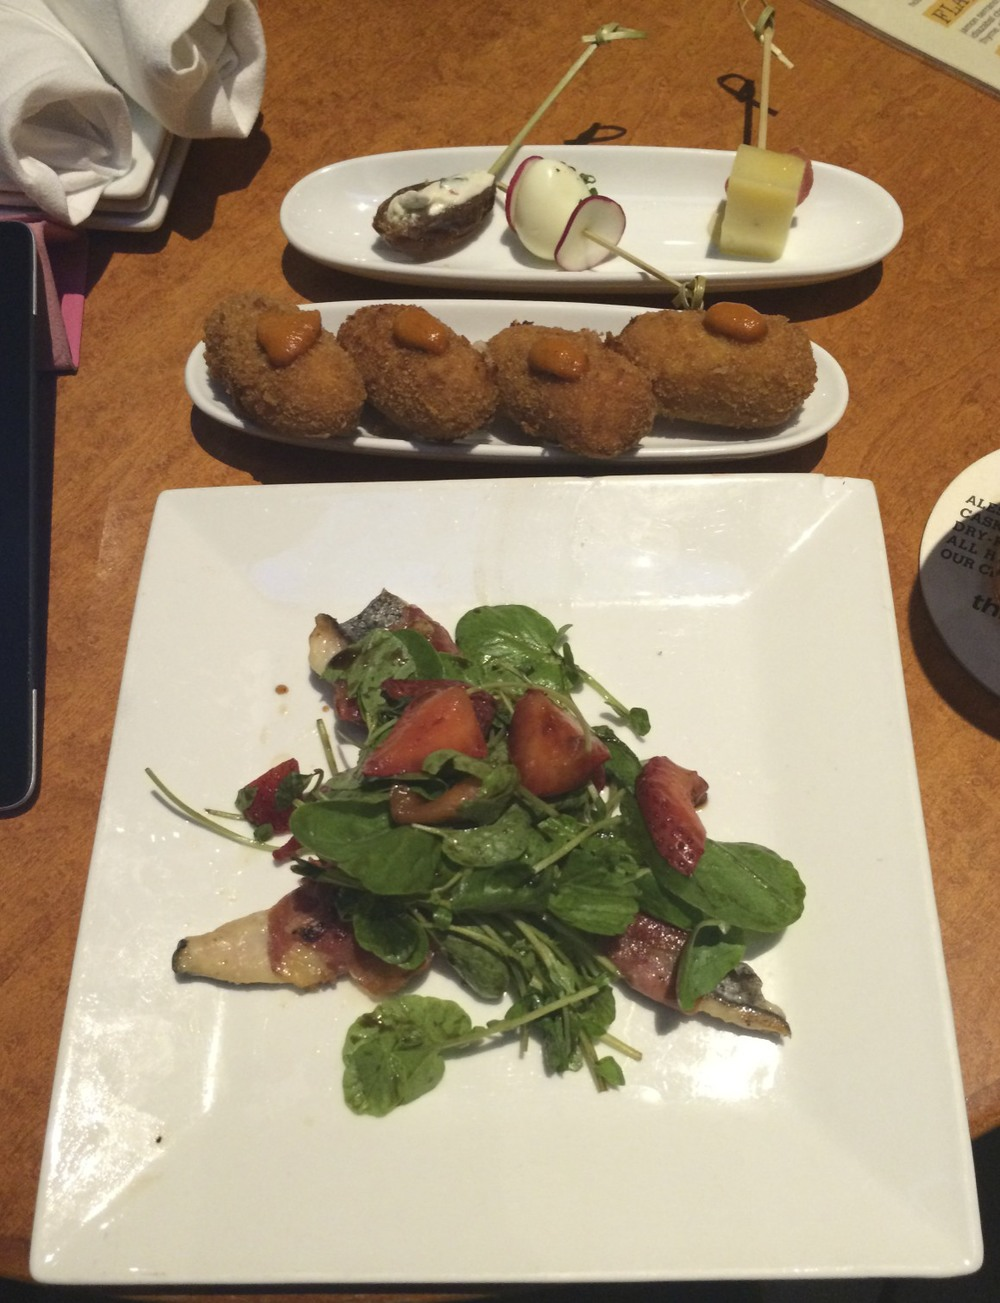 Top: Fig stuffed with goat cheese skewer, quail egg and radish skewer, and manchego, rhubarb and honey skewer Middle: Croquettas with Romesco sauce Bottom: Jamón wrapped halibut with greens and strawberries